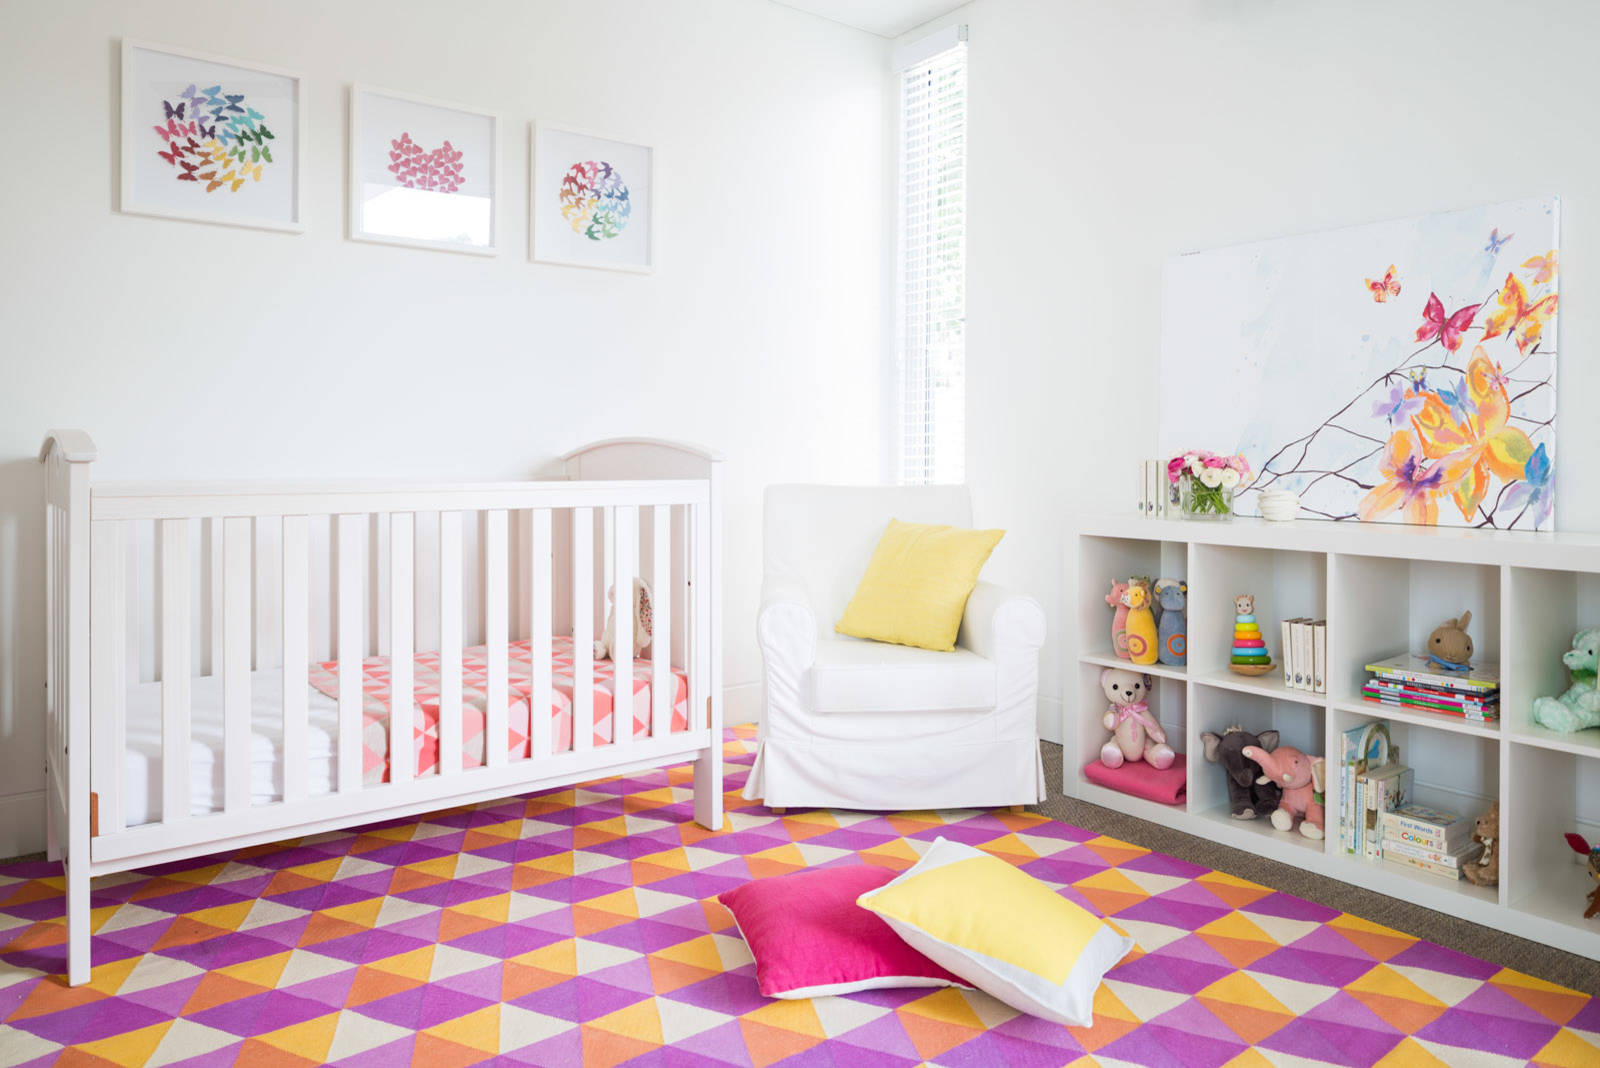 Smart rug in shades of purple, violet and yellow with hexagonal pattern for the kids' room